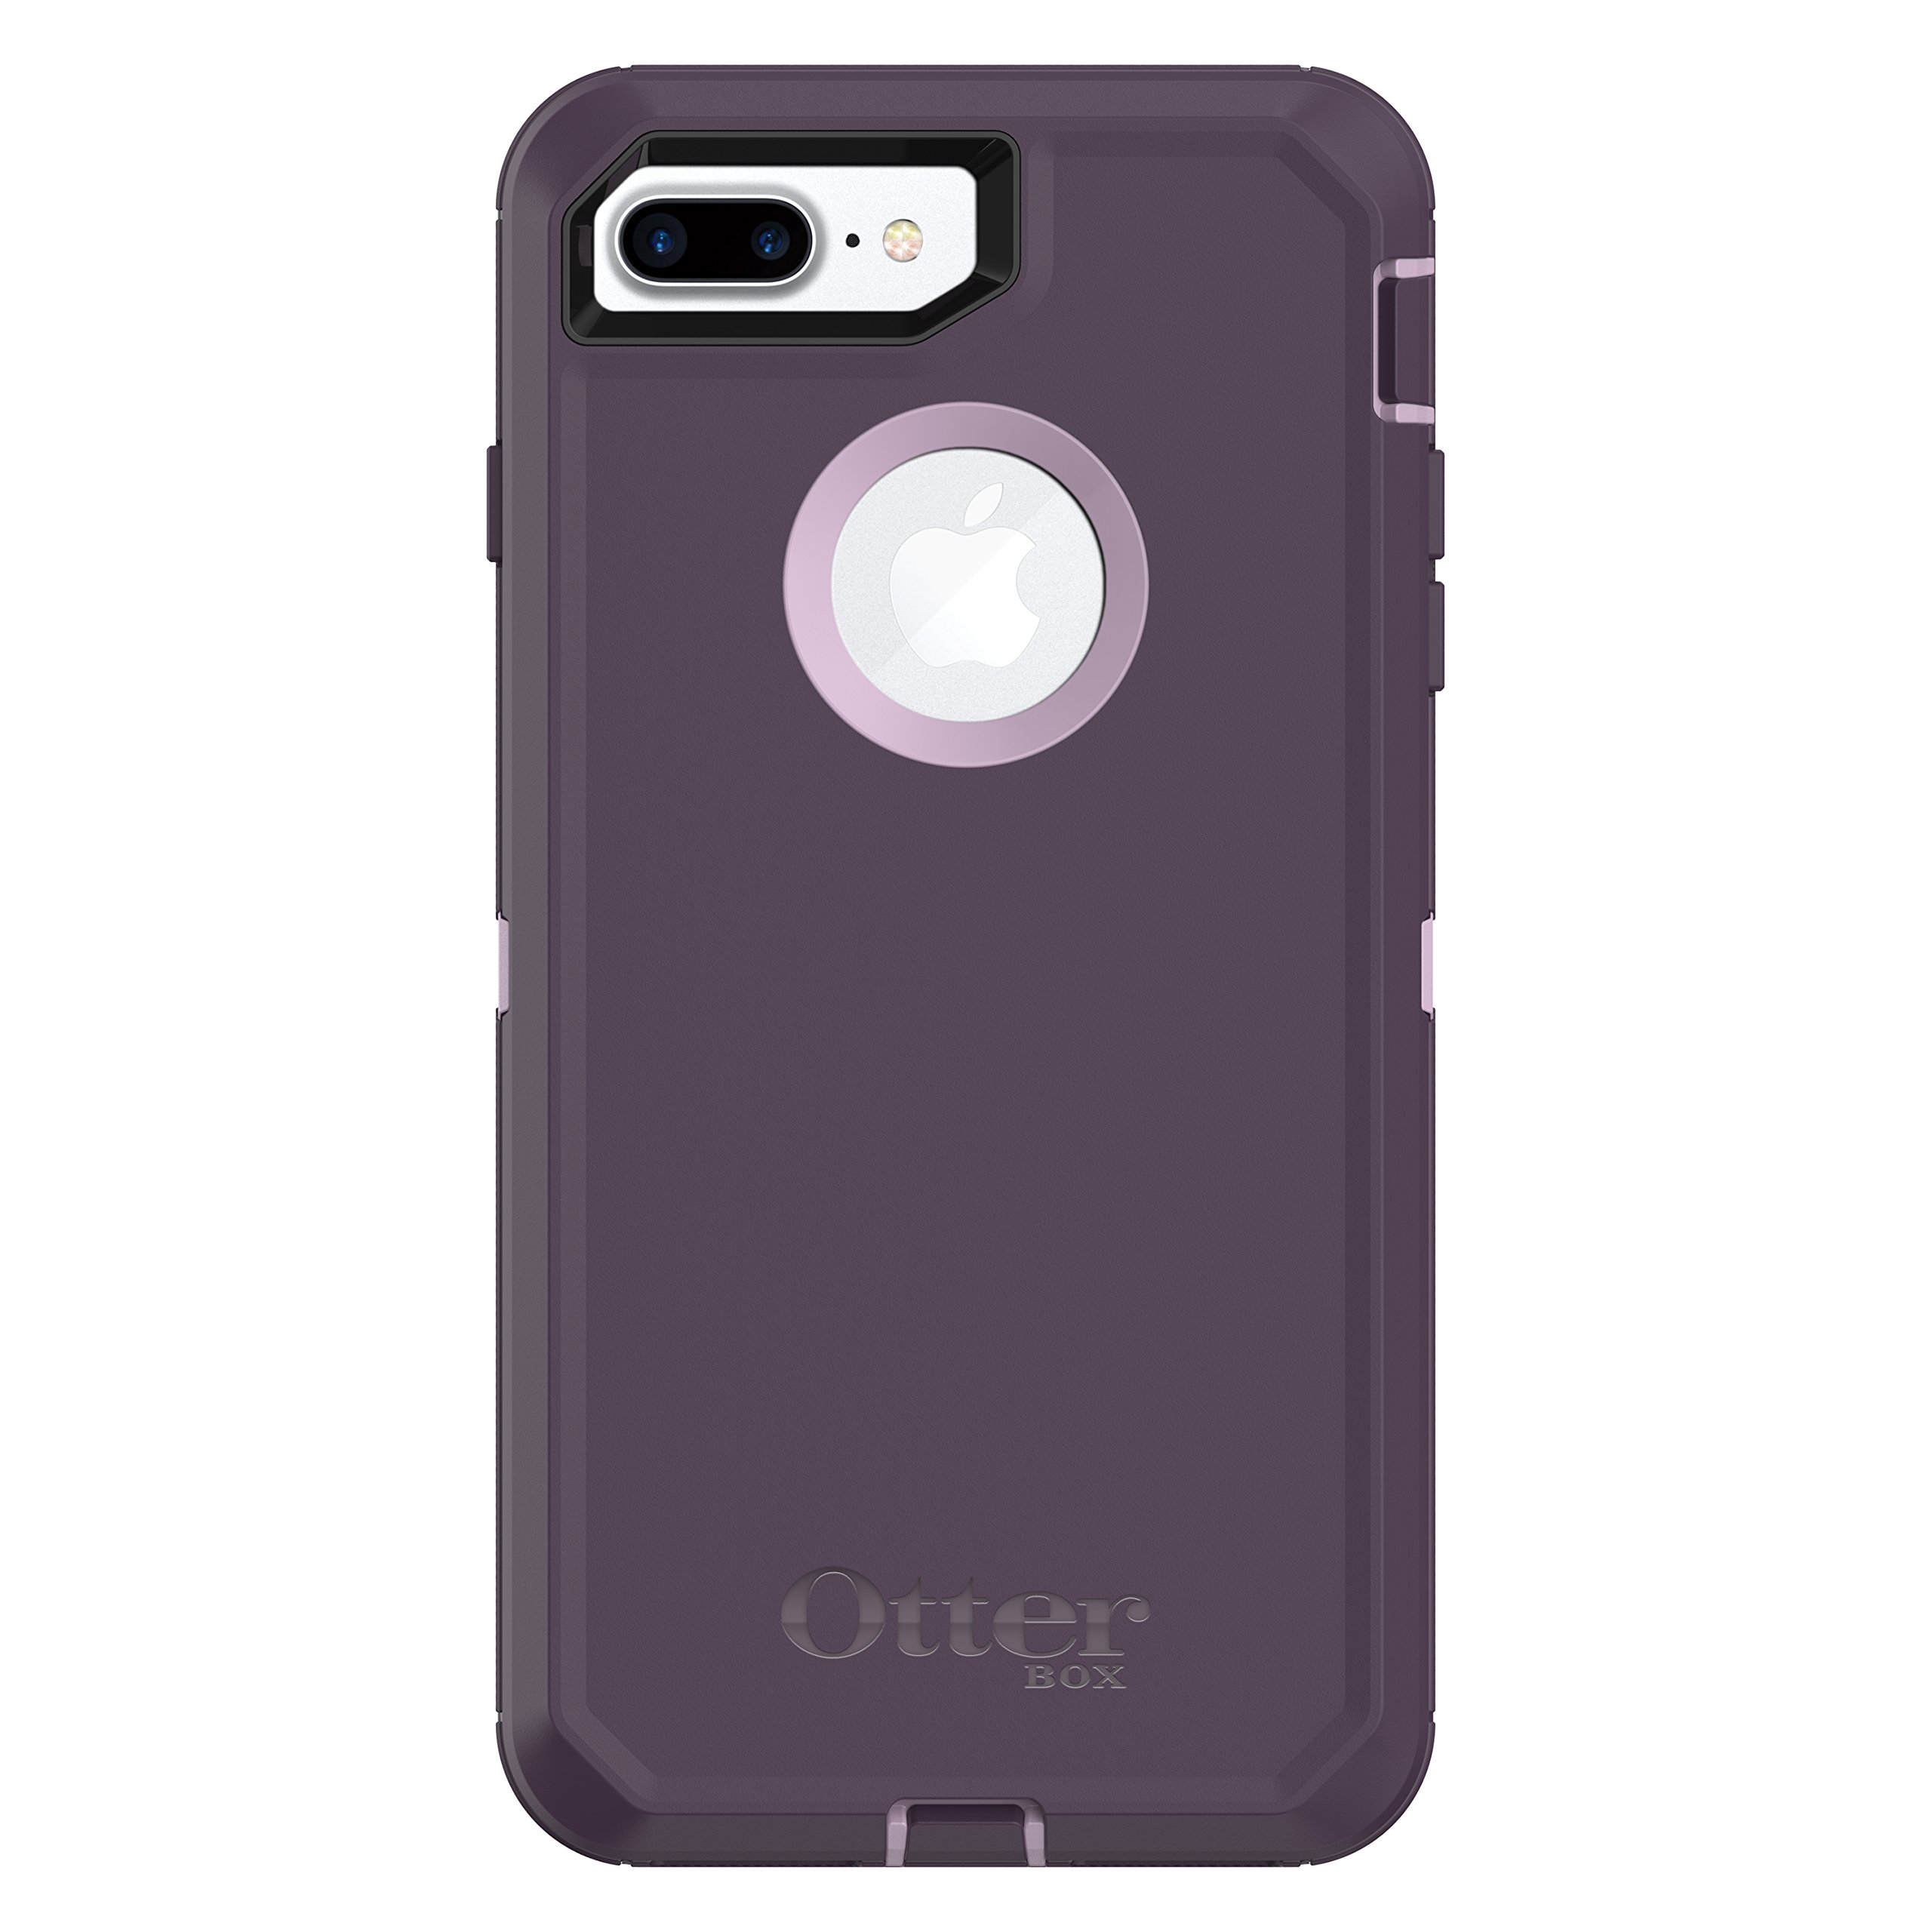 Otterbox Defender Series Case for  Iphone 8 Plus & Iphone 7 Plus  - Retail Packaging - Purple Nebula (Winsome Orchid/Night Purple)